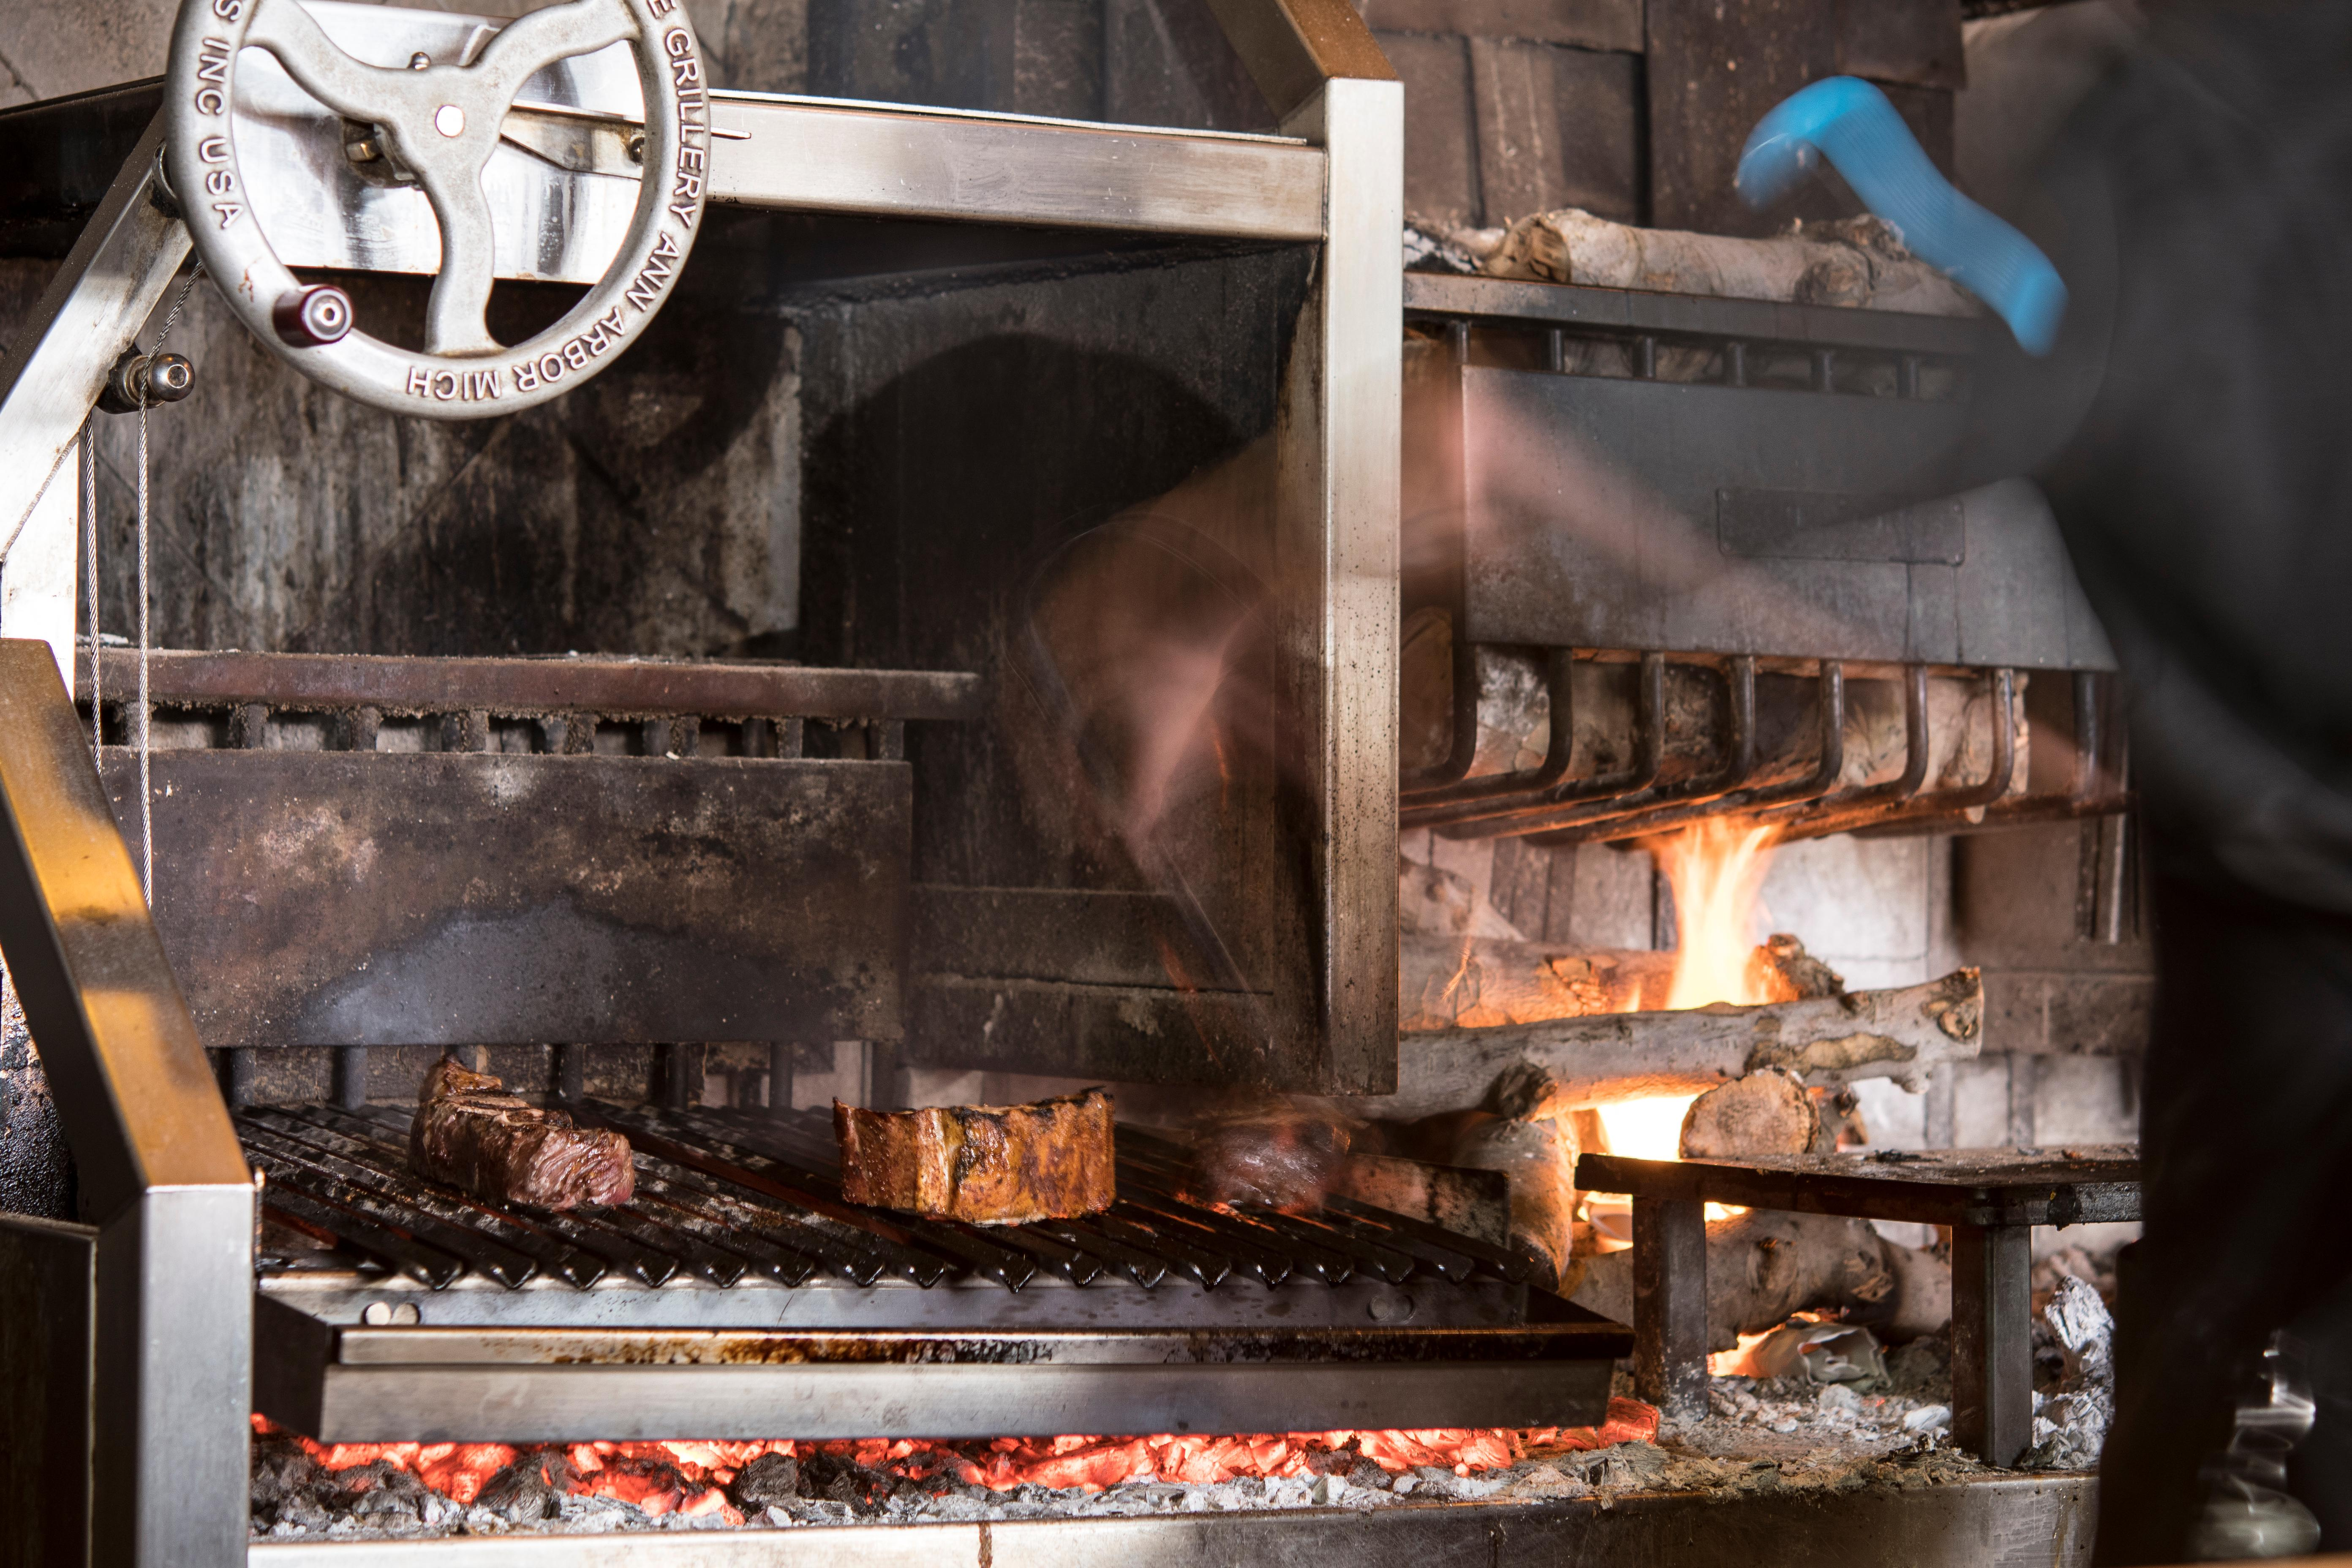 Steaks on the grill at Miller's Guild. (Image: Fire & Vine Hospitality)